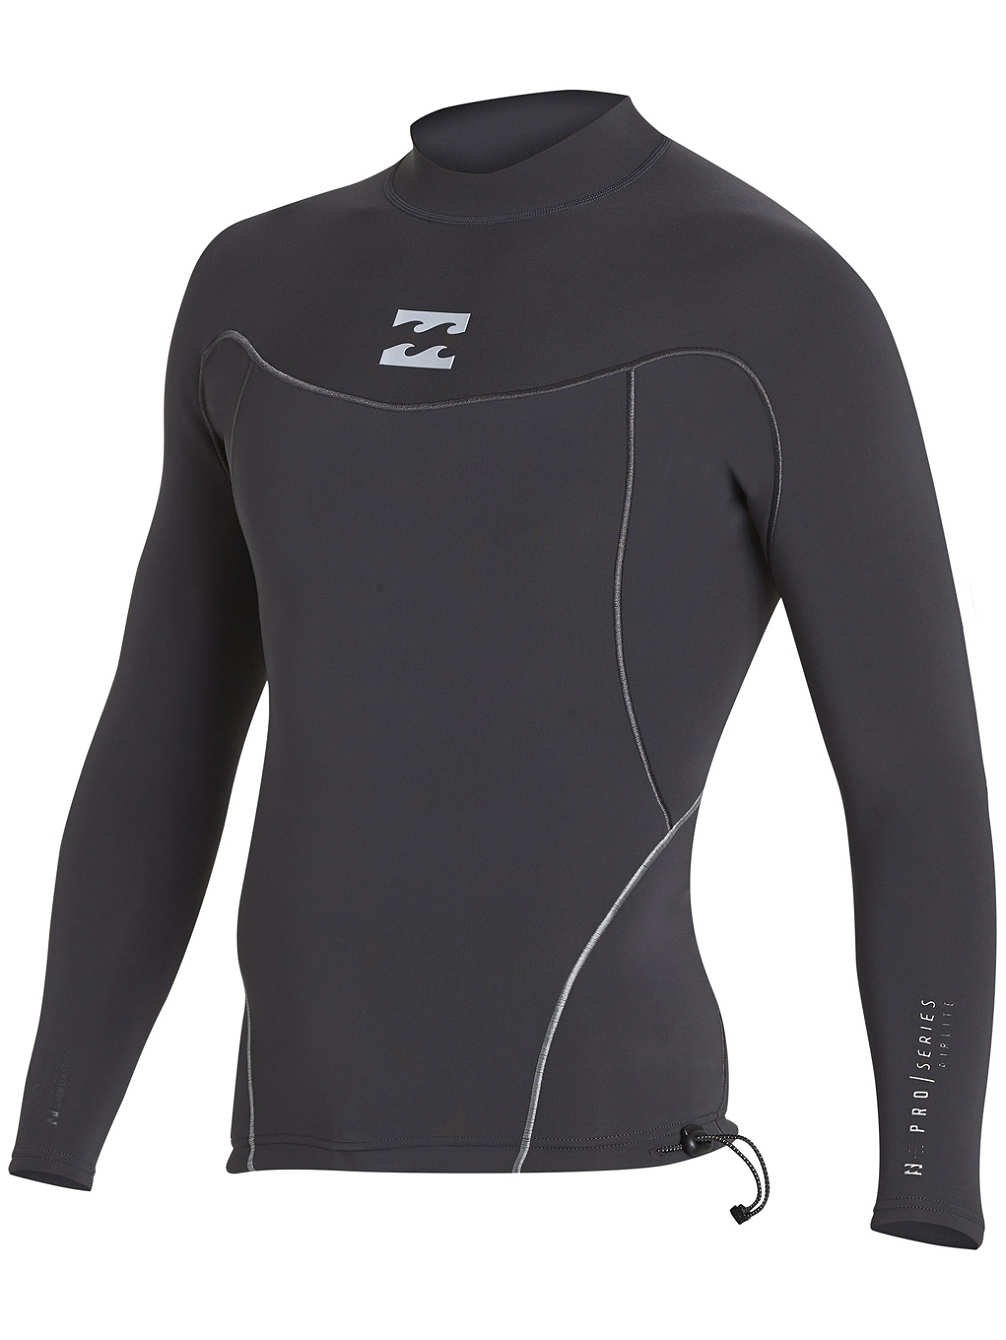 BILLABONG 2018 Proairlite 1mm Long Sleeve Neoprene Top schwarz Sands H41M01